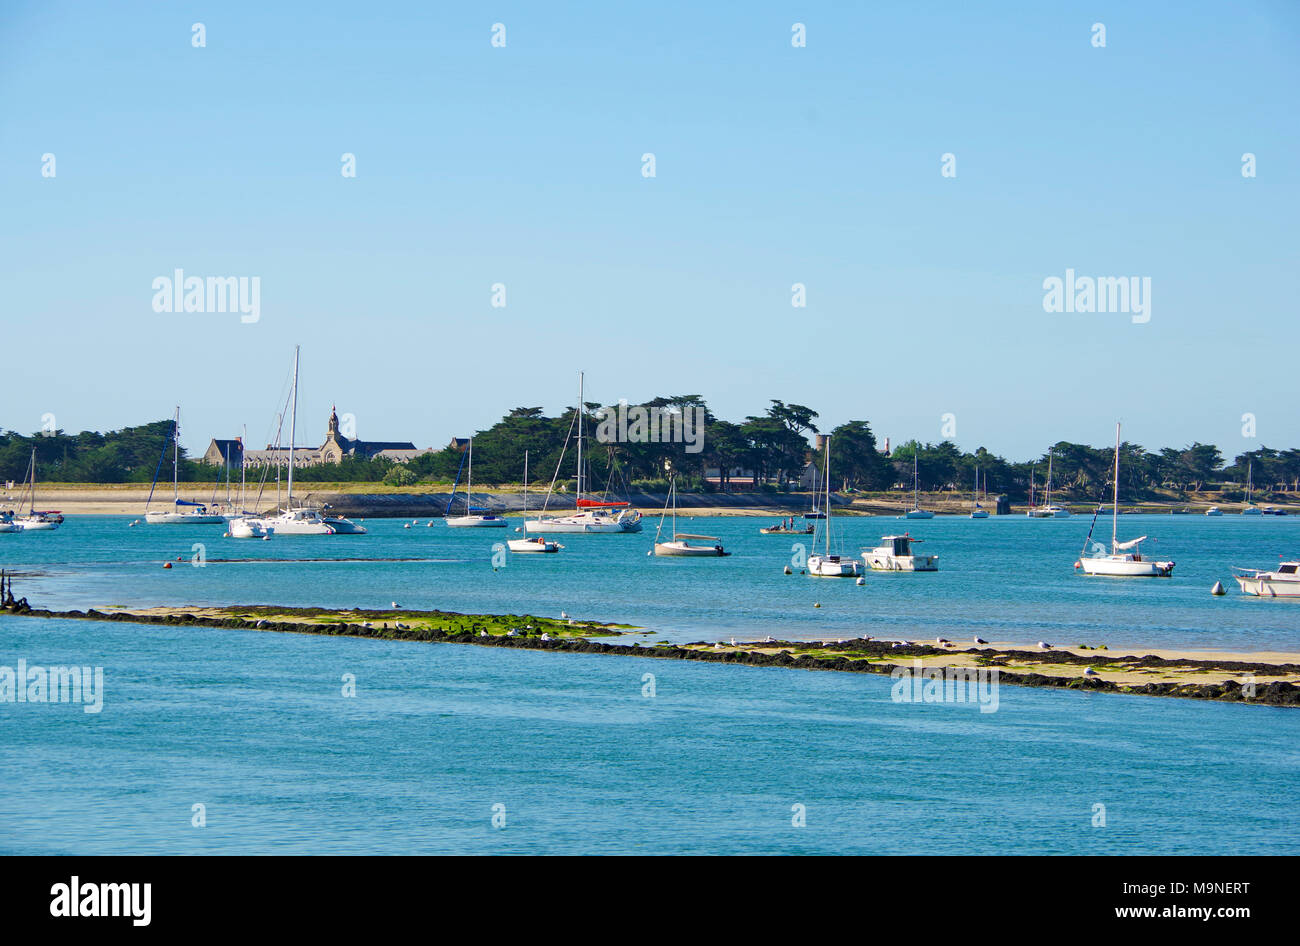 Superb View Of Pen Bron From Le Croisic Harbor In Loire Atlantique, France   Stock  Image